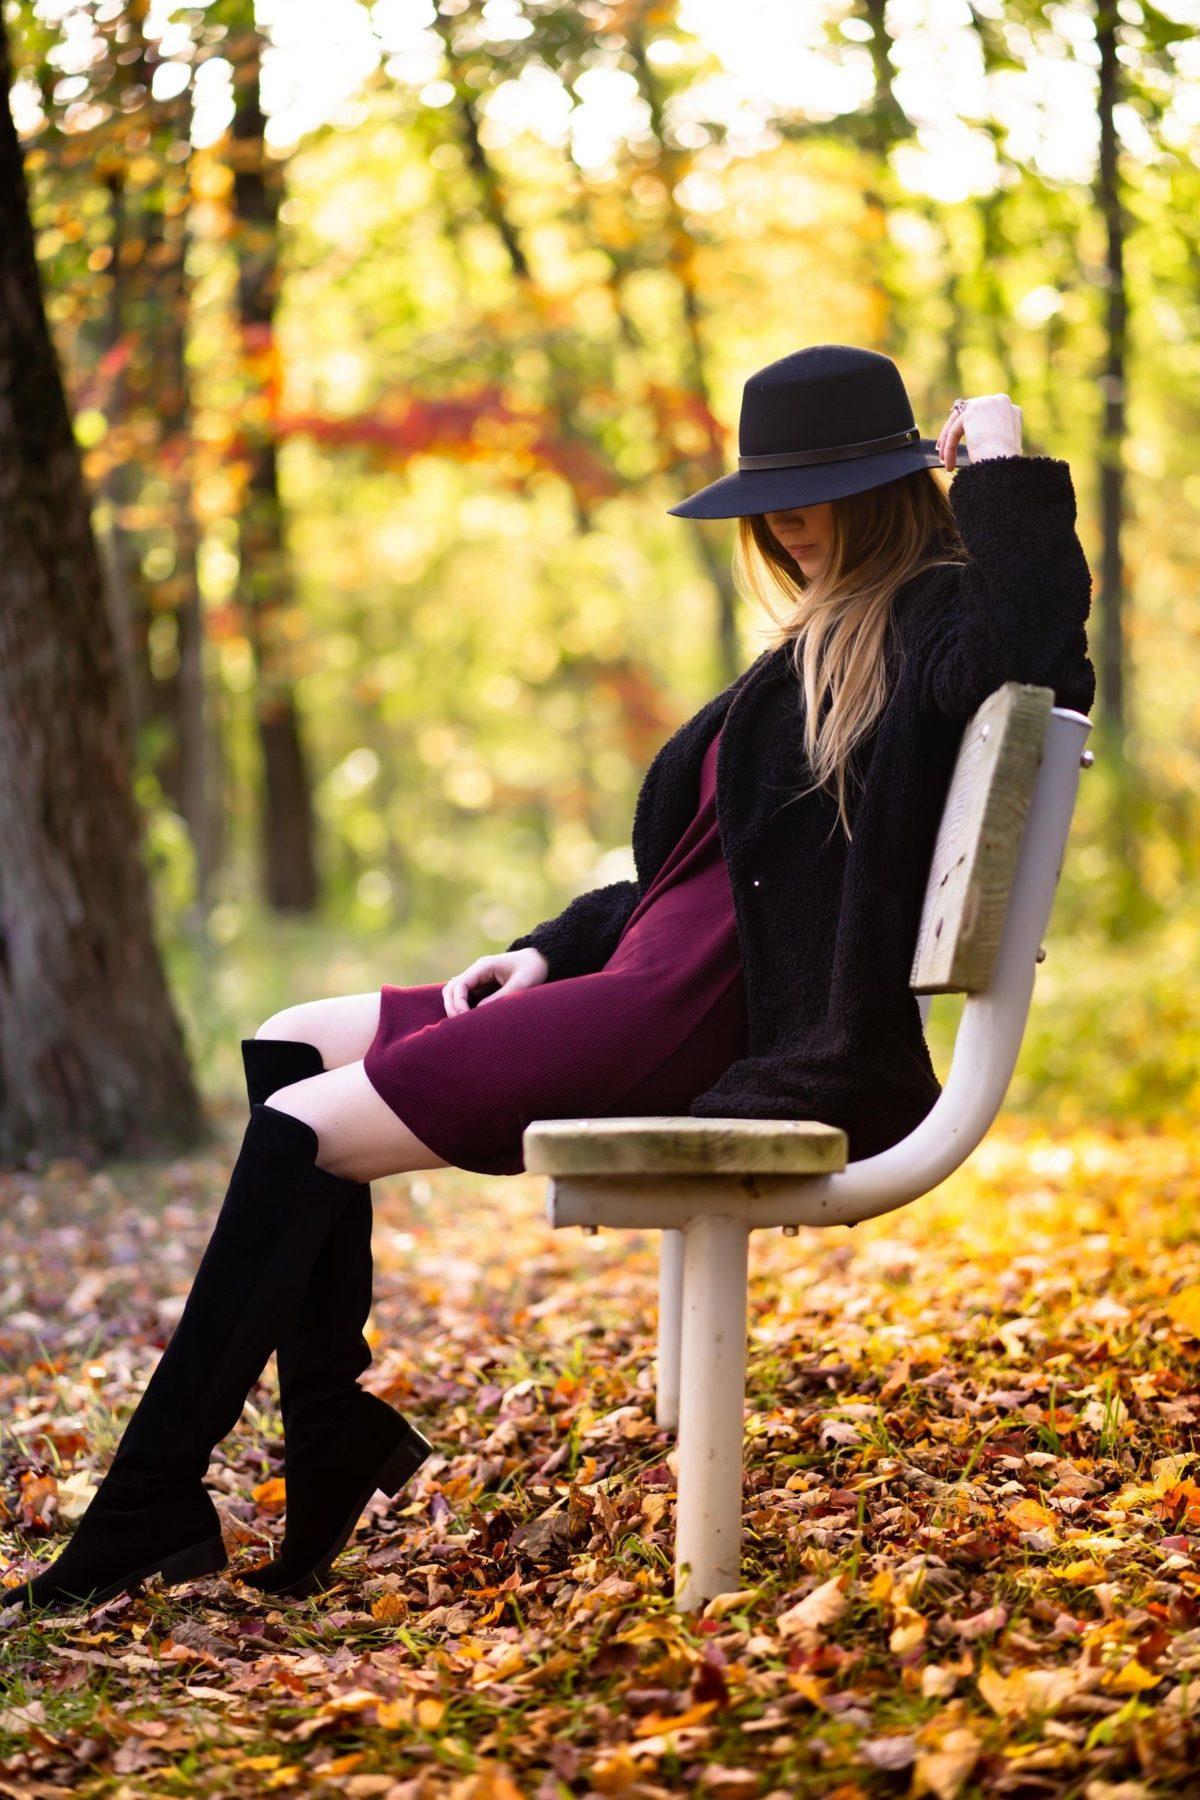 winter autumn outfit merlot red dress with black overknee boots coat and black fedora hat